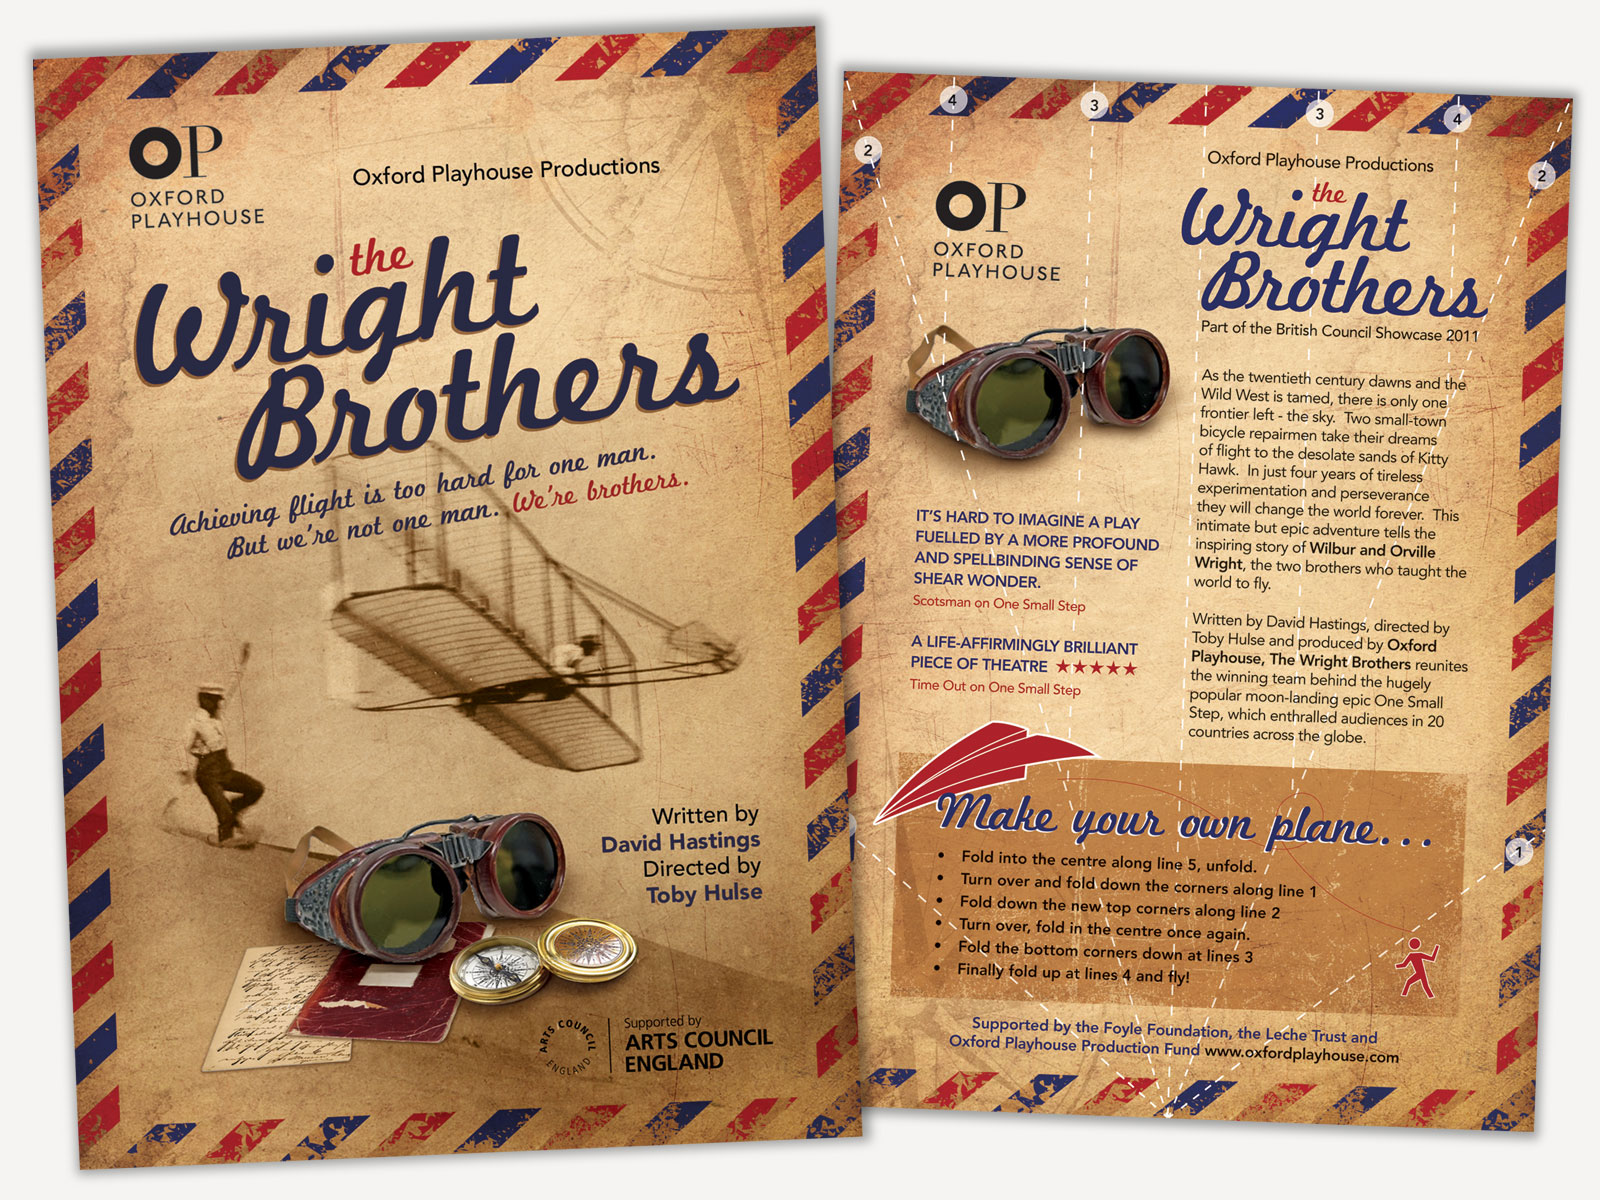 Wright Brothers Thetare Production